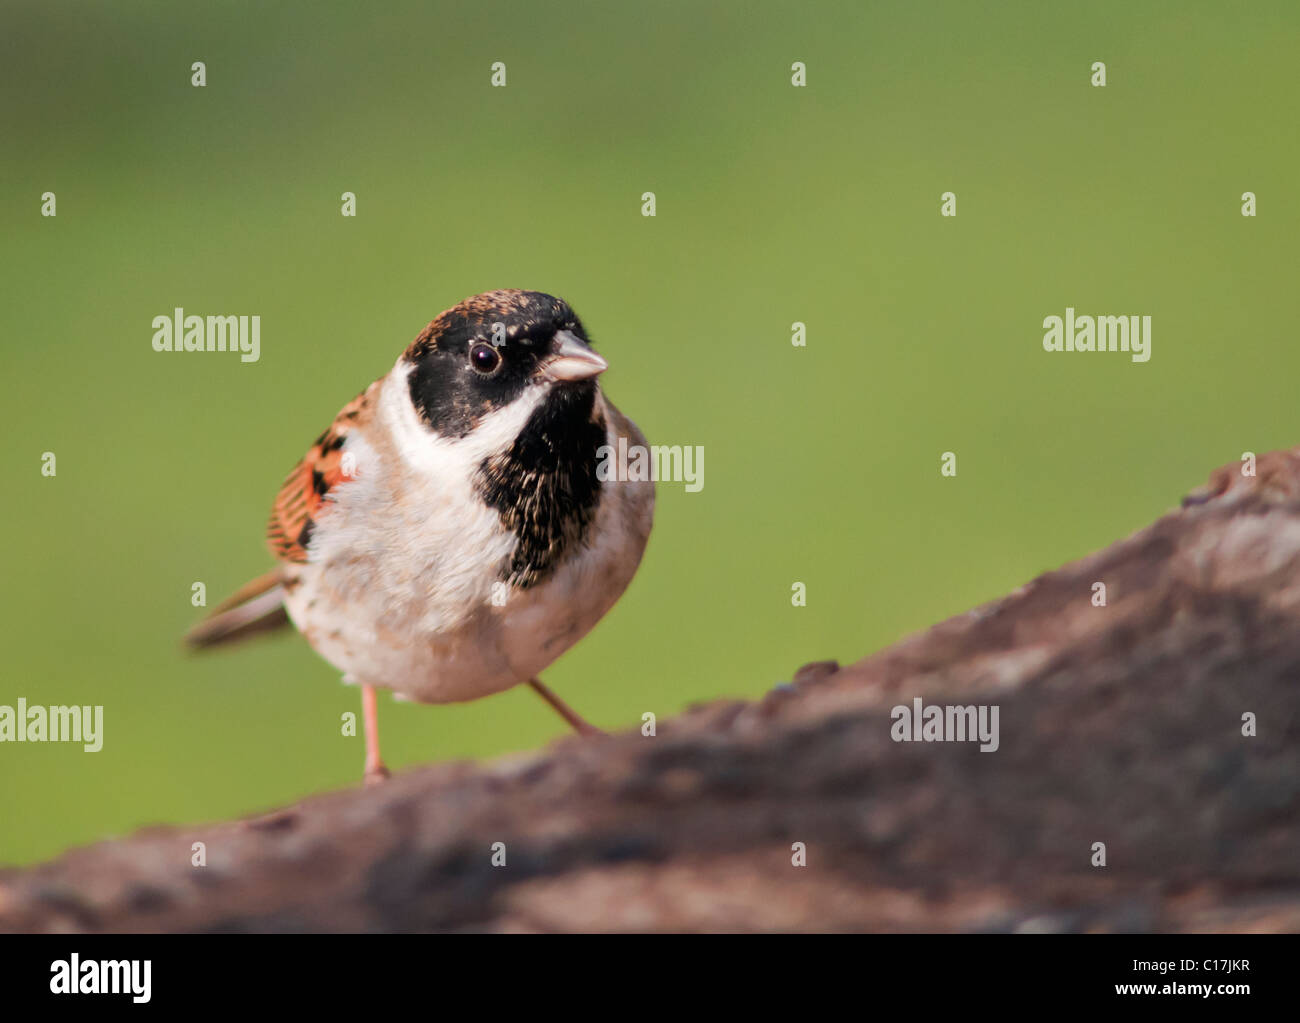 Reed Bunting (Emberiza schoeniclus) perched - Stock Image